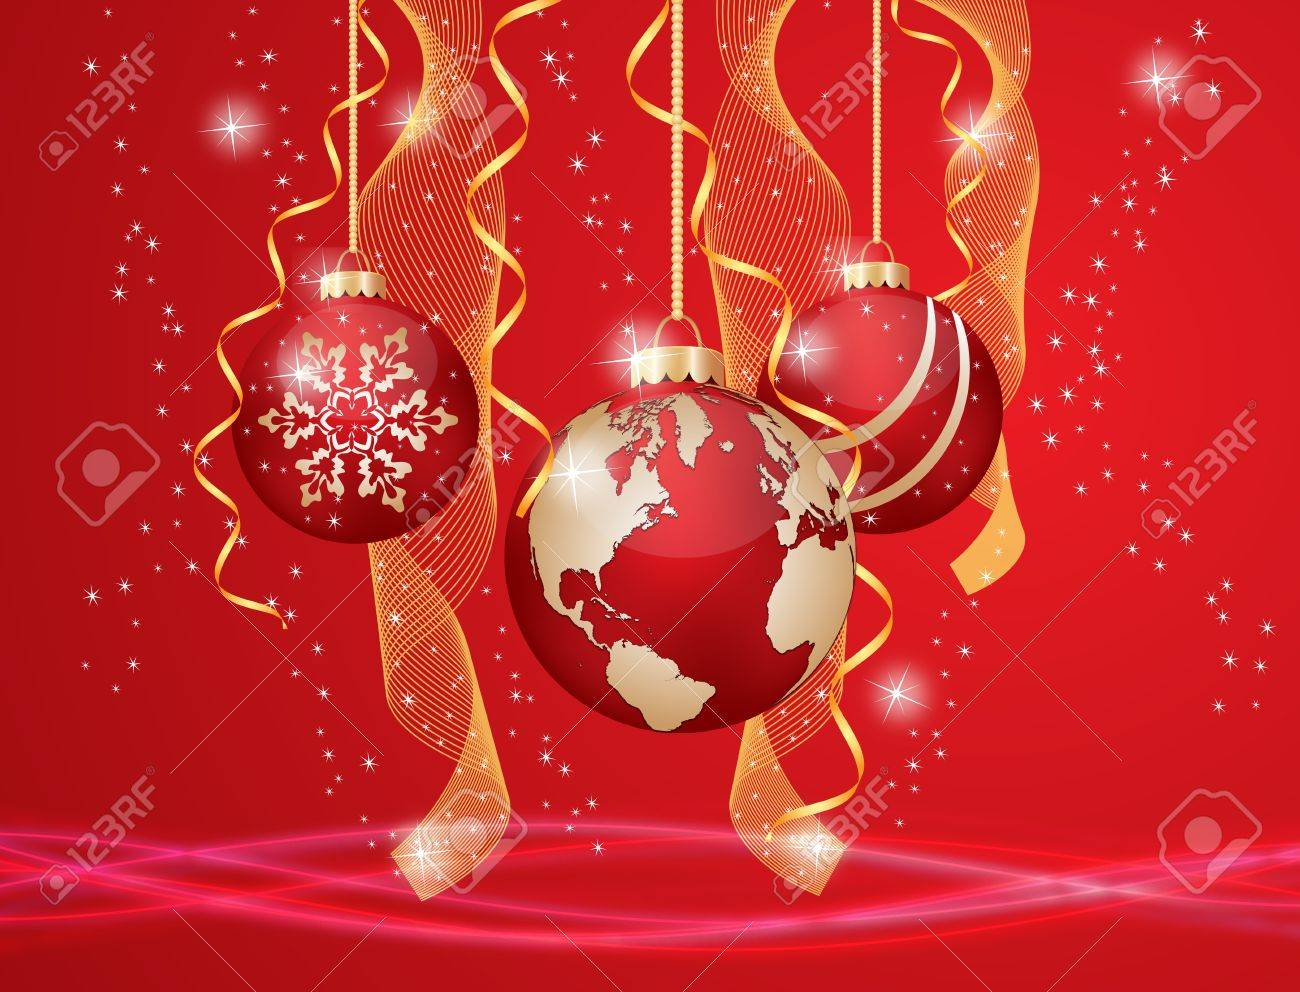 Christmas ball with world map on a decorated background royalty free christmas ball with world map on a decorated background stock vector 15081107 gumiabroncs Images